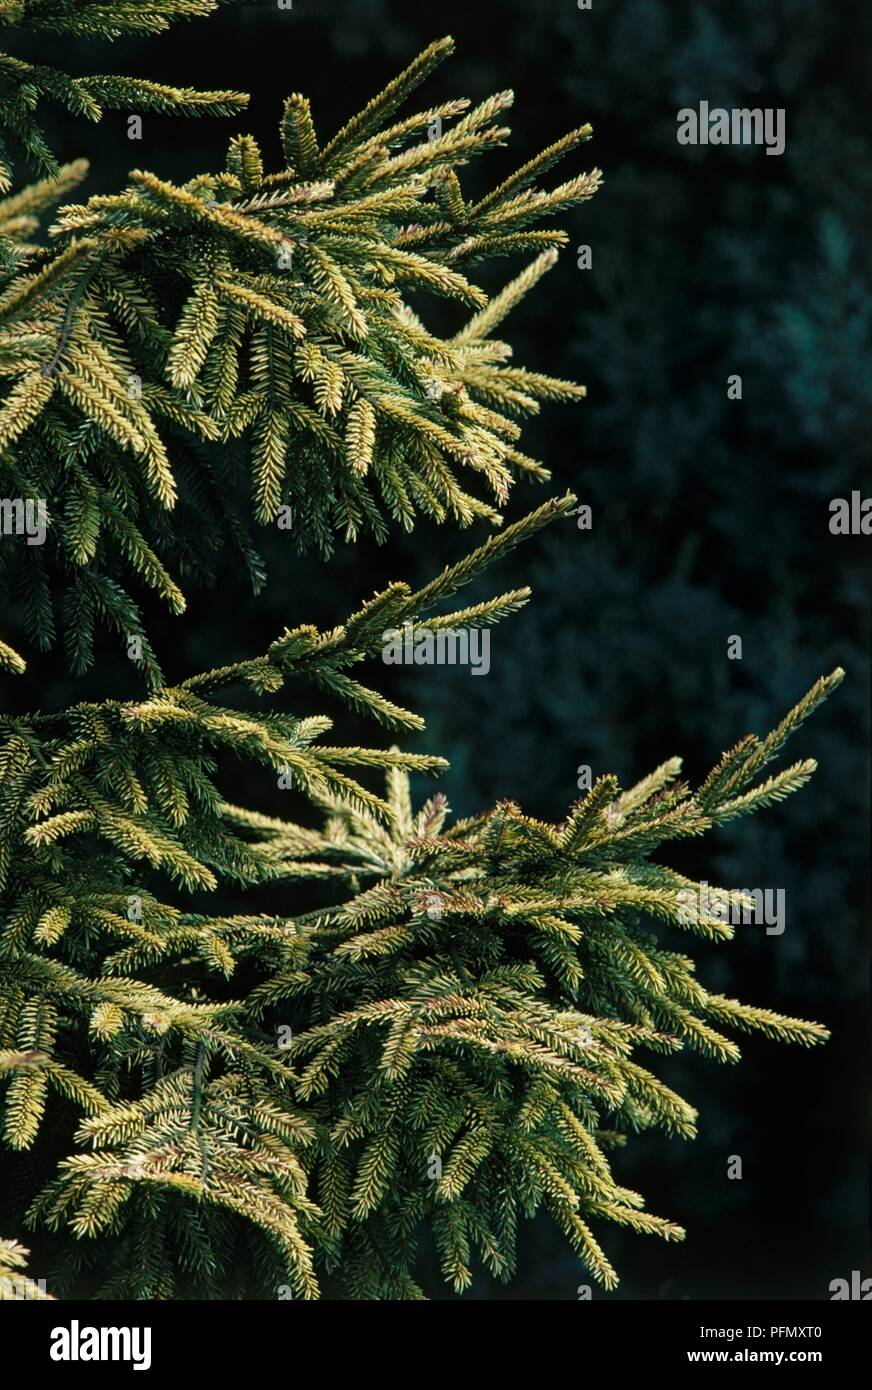 Branches of Picea orientalis 'Skylands' (Caucasian Spruce, Oriental Spruce) Stock Photo